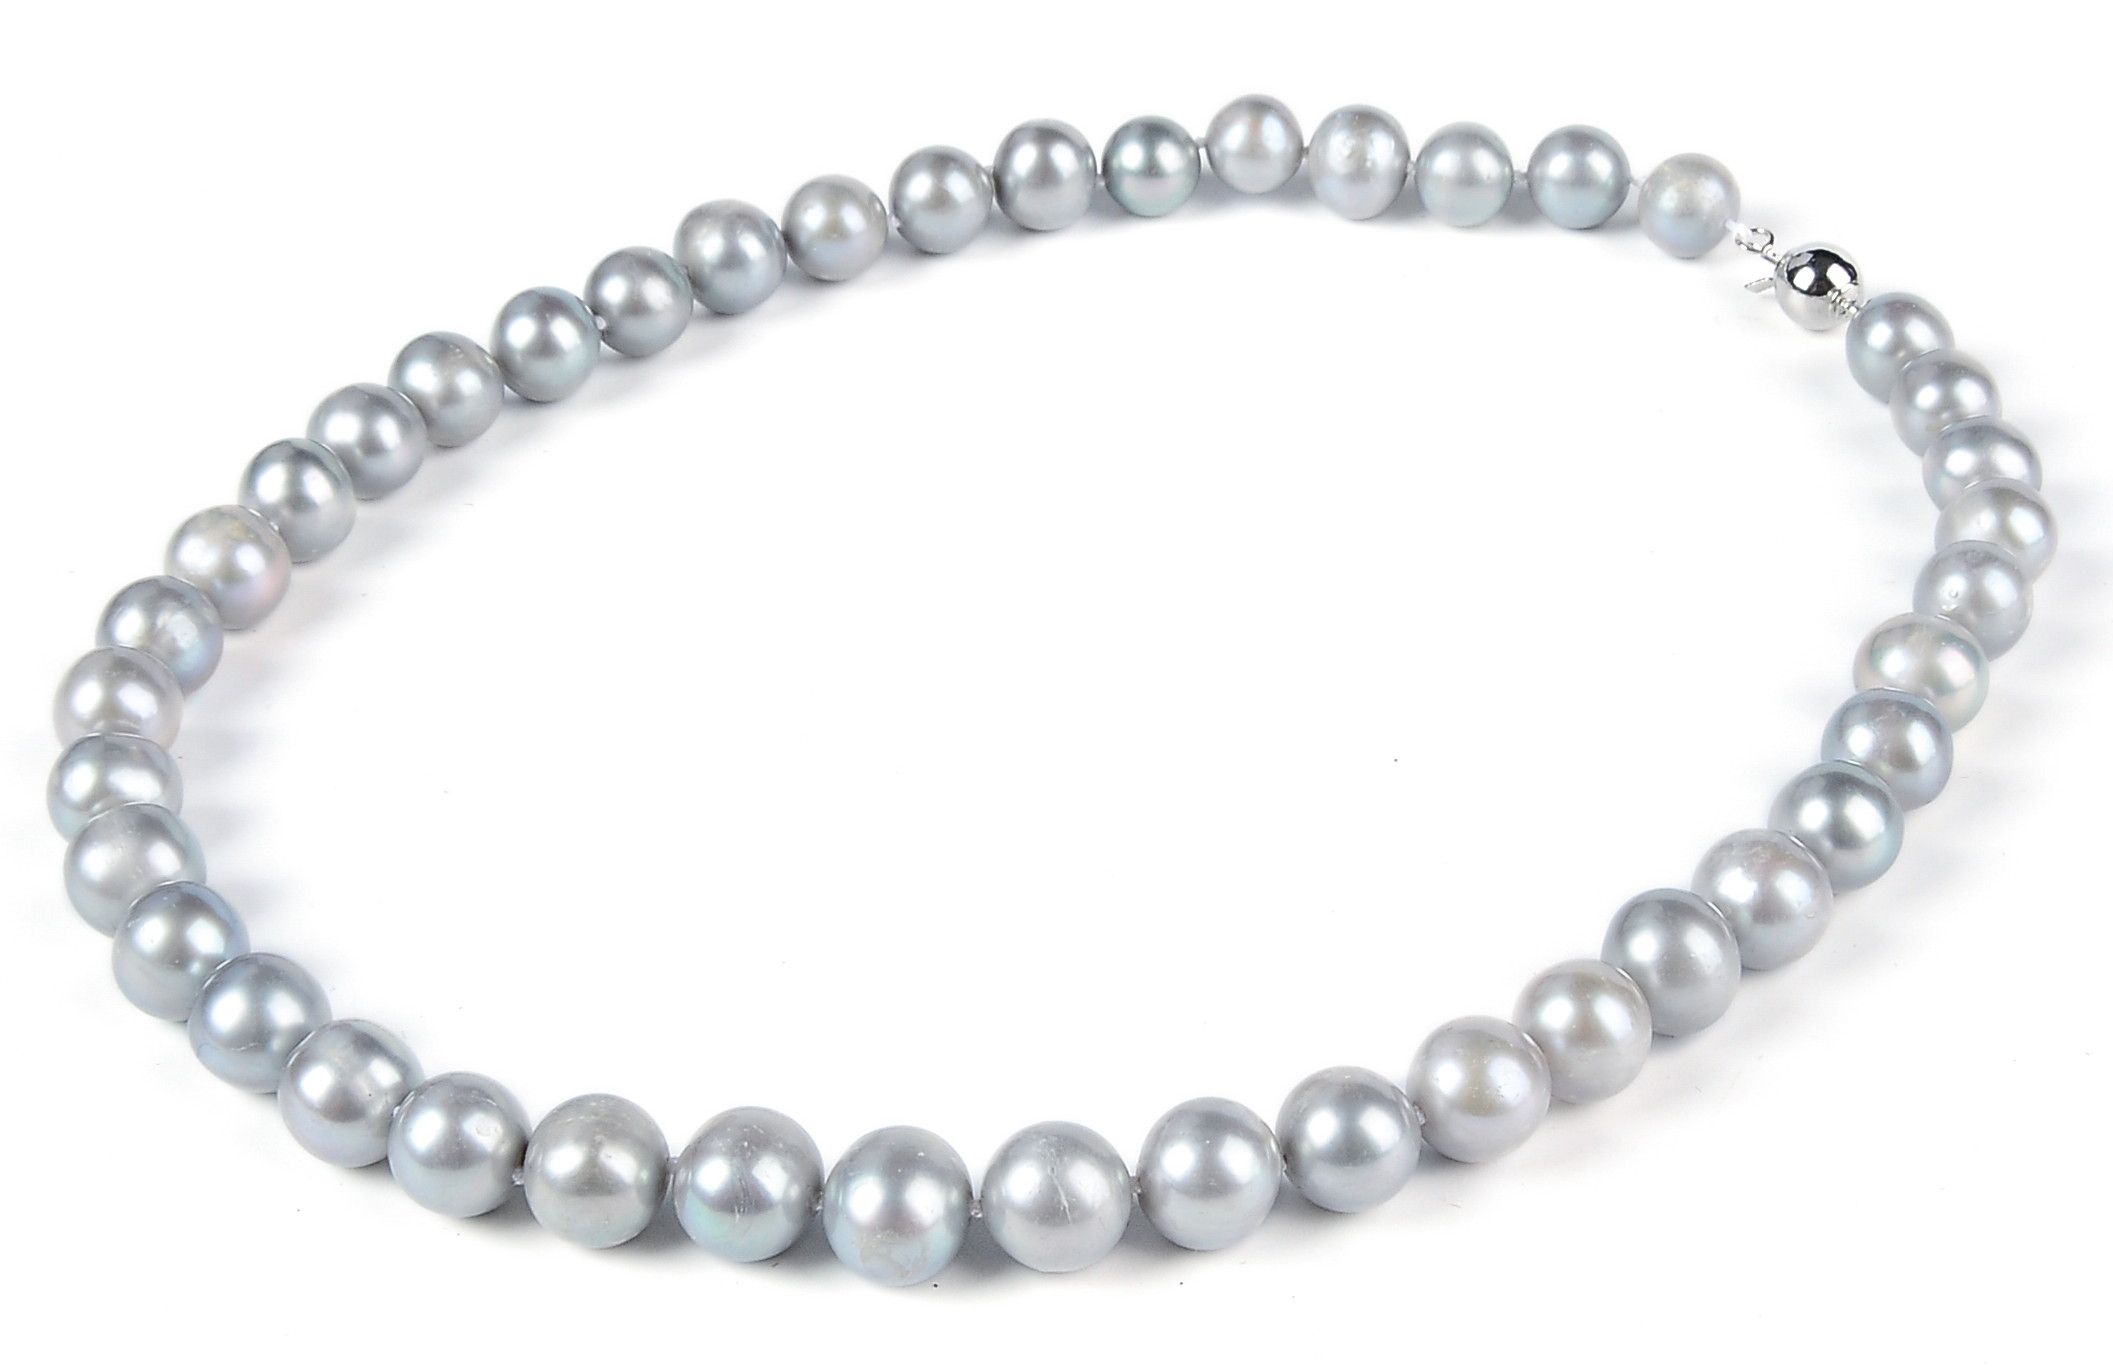 Big 10 mm  Freshwater Gray Pearl Necklace -nk190